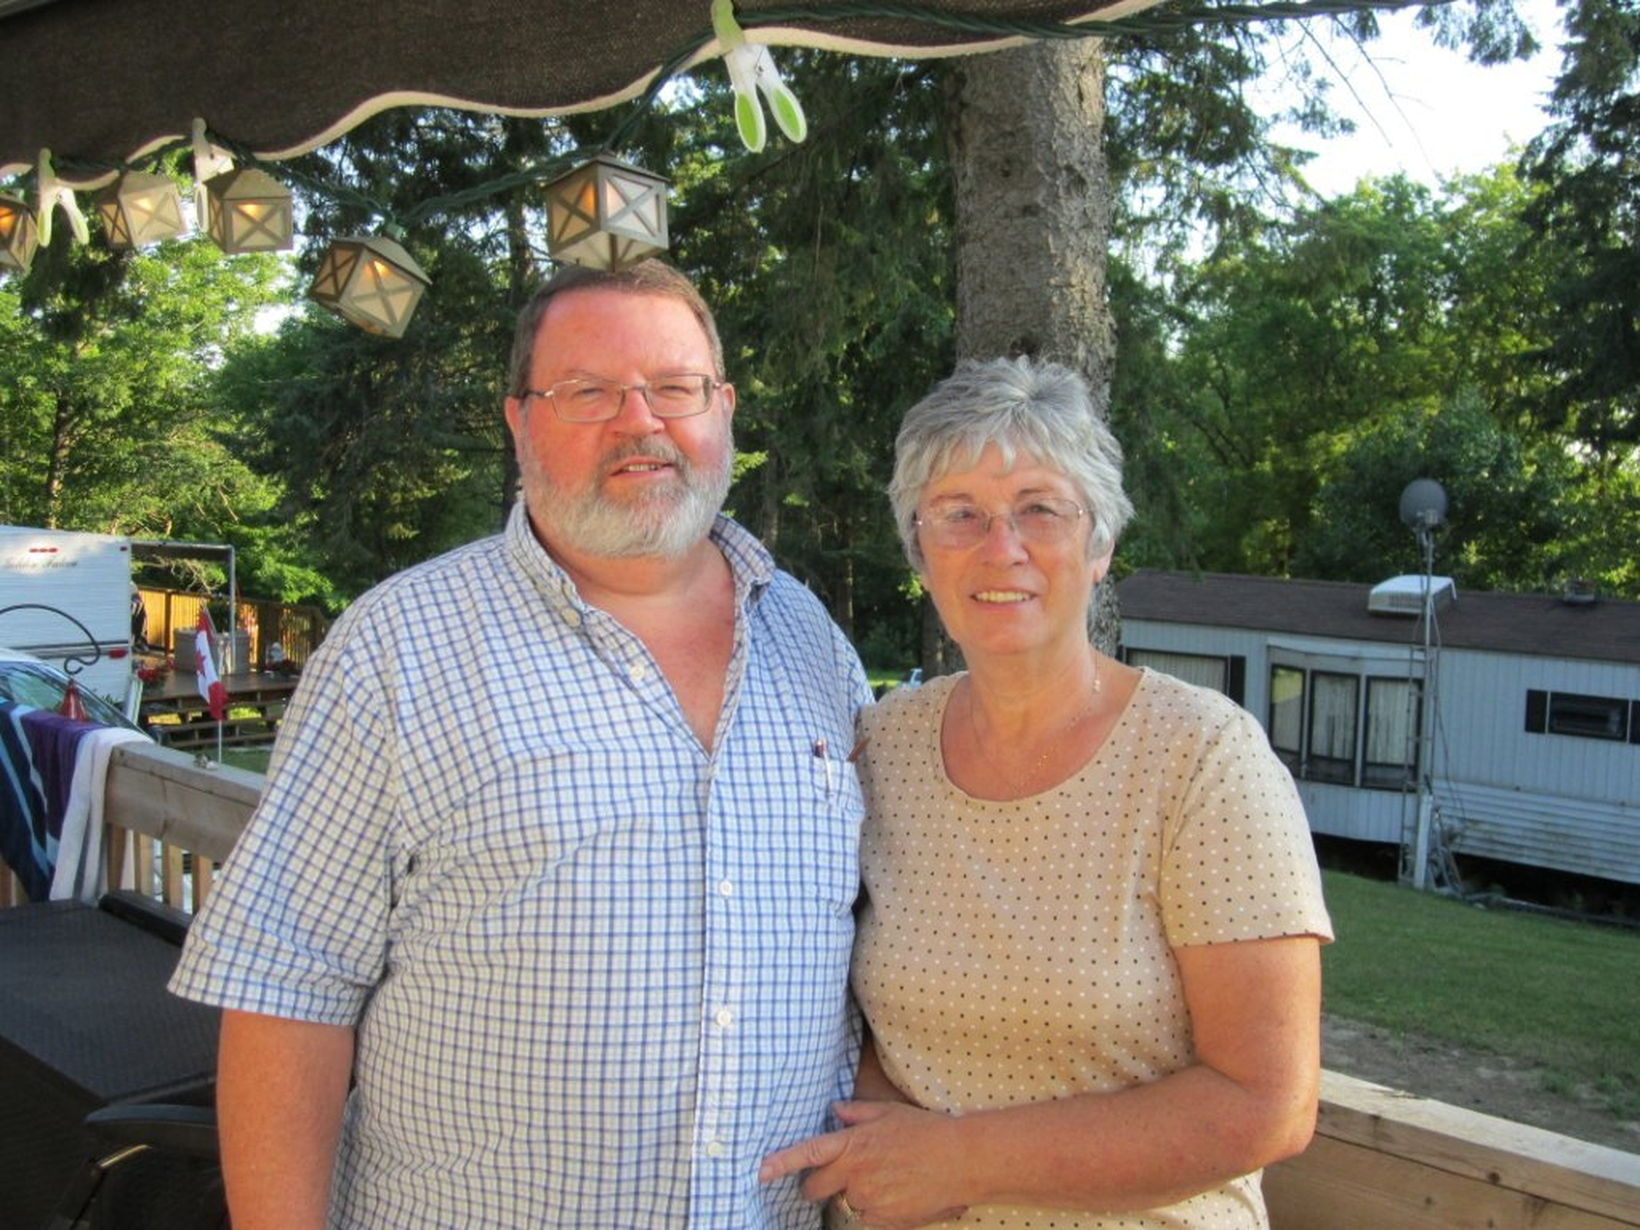 James & Christine from Belleville, Ontario, Canada